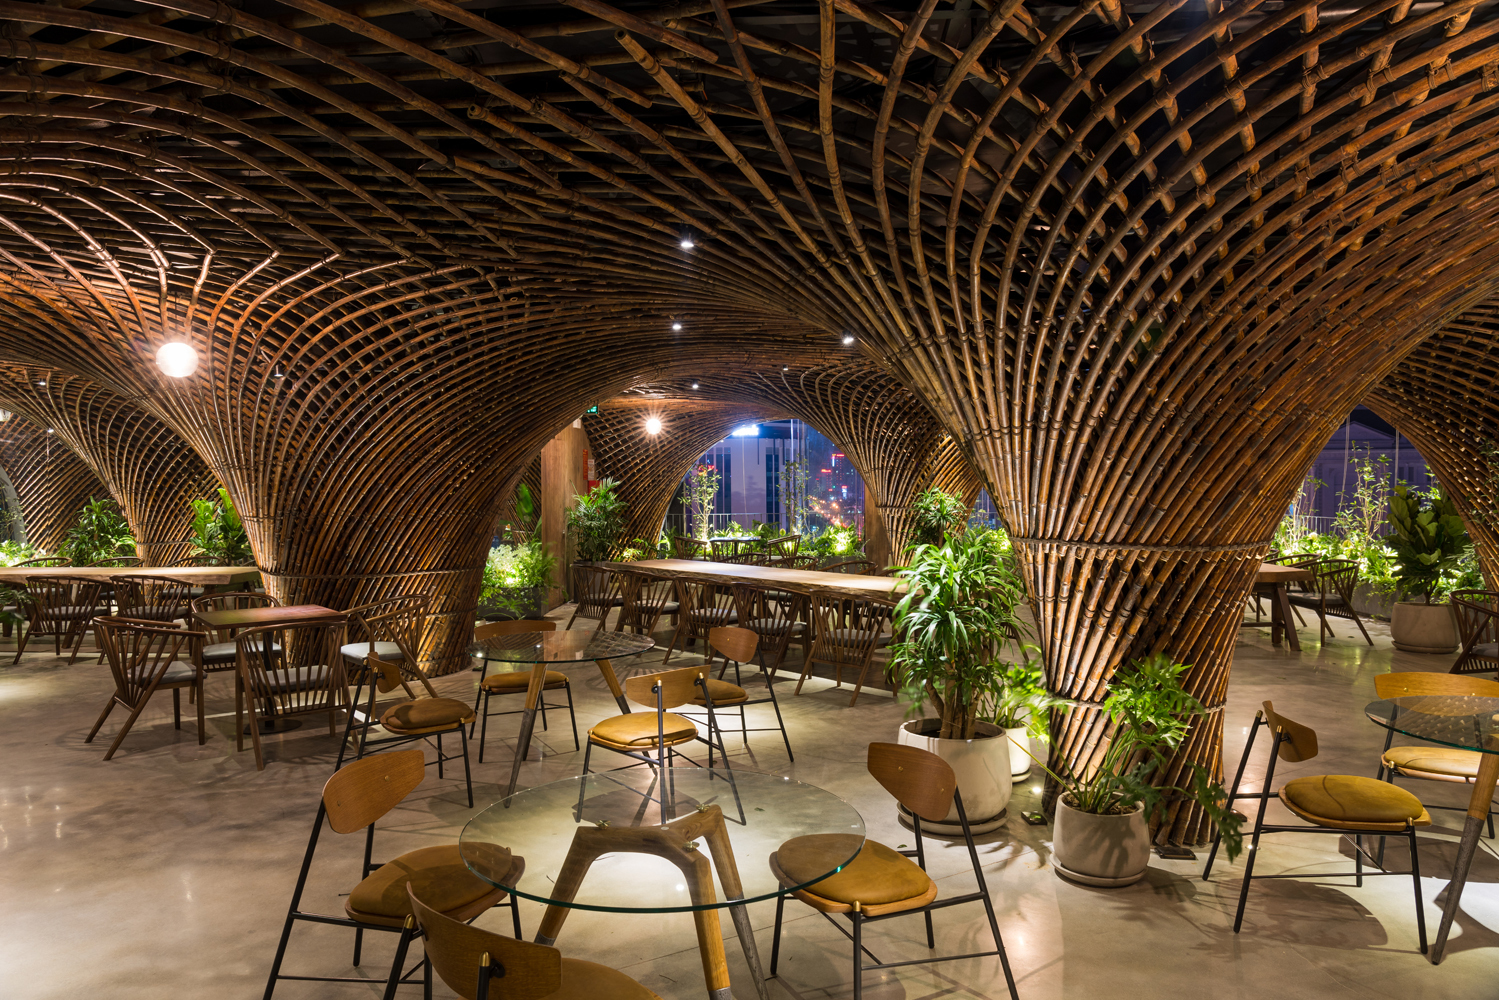 [Photos] VTN Architects Transform Nghe An Rooftop Cafe With Impressive Swirling Bamboo Dome